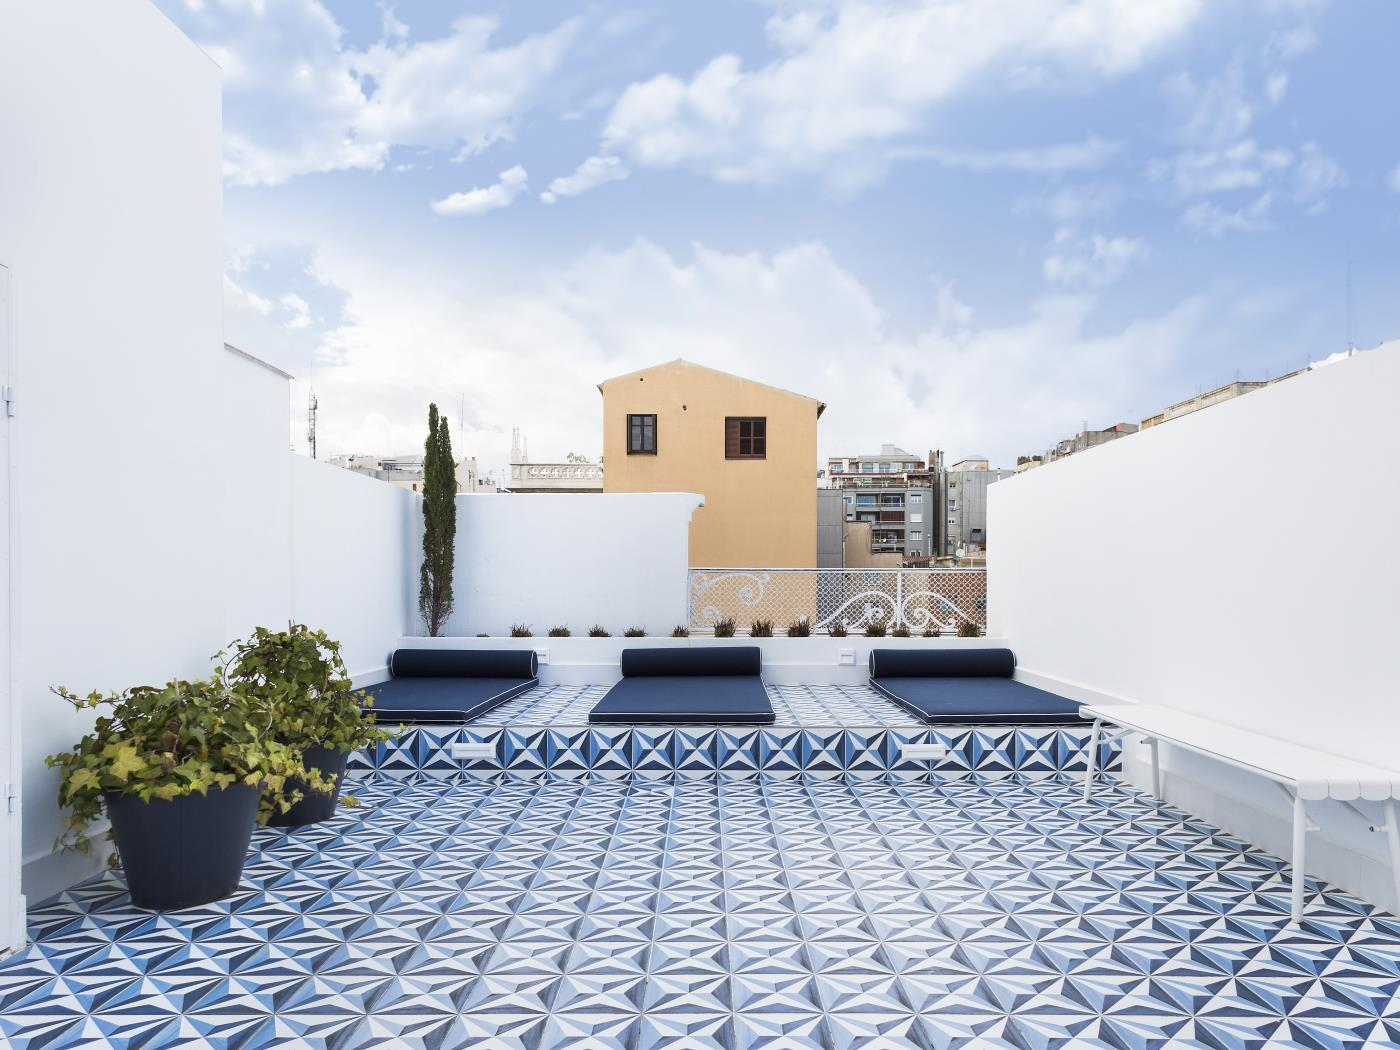 Flat 2 bedroom with private balcony and shared rooftop terrace - My Space Barcelona Appartements